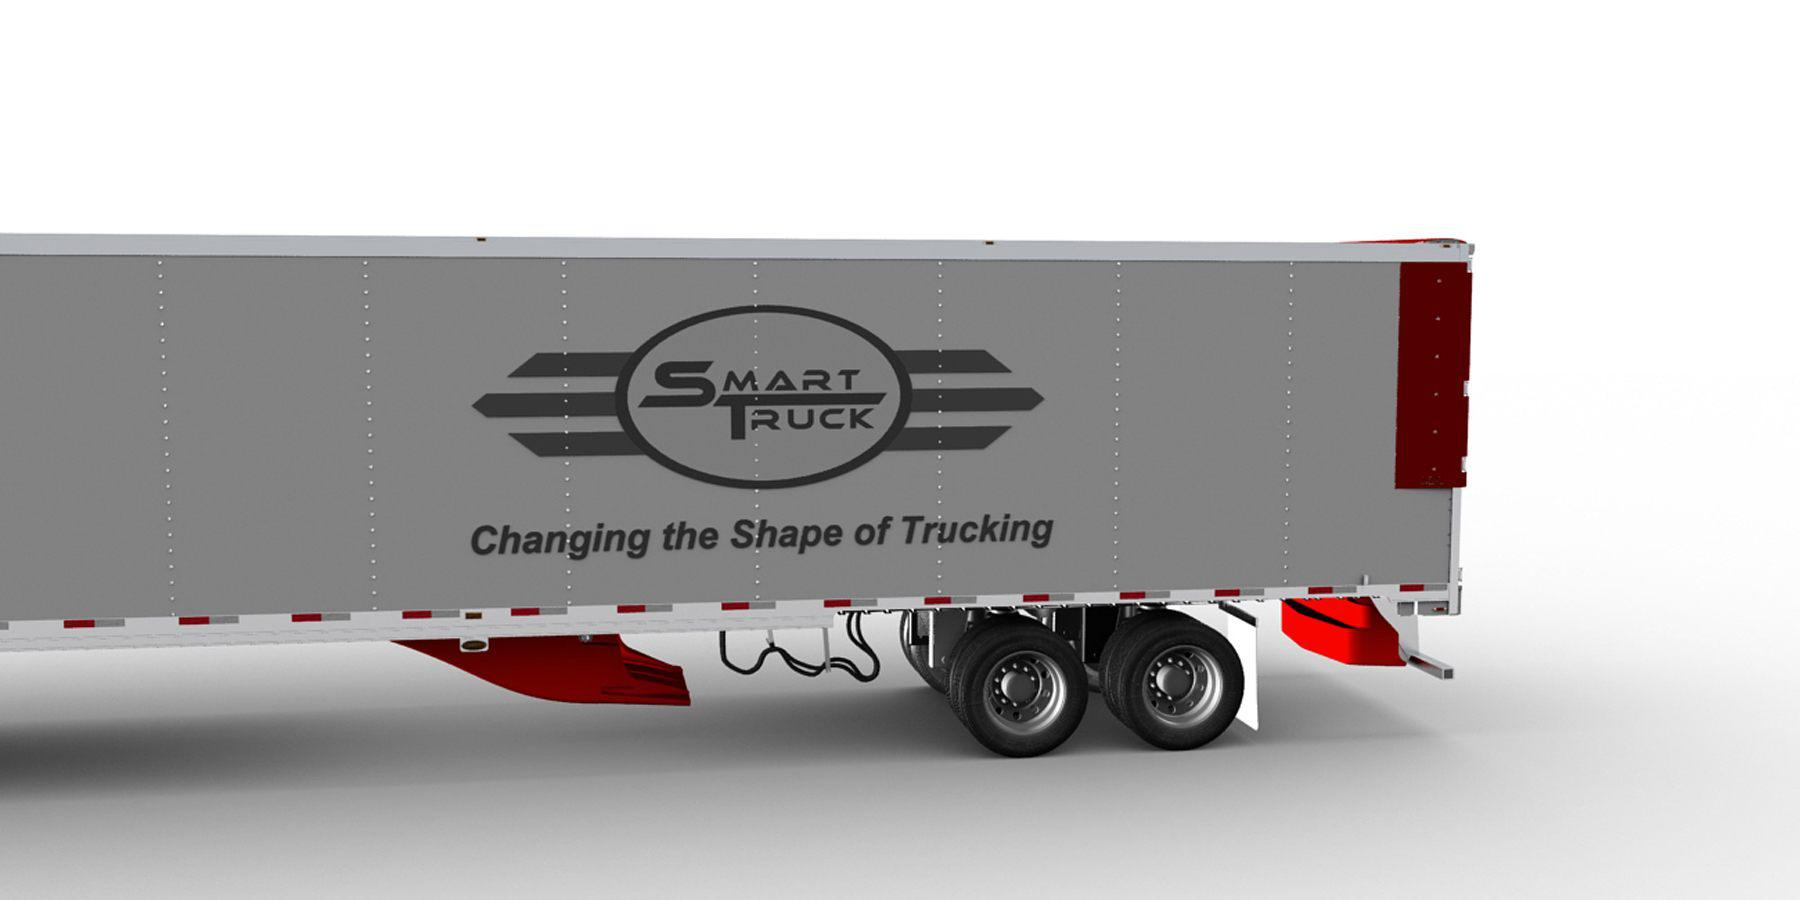 Owner-operators have potential to get the most out of aero devices, SmartTruck says